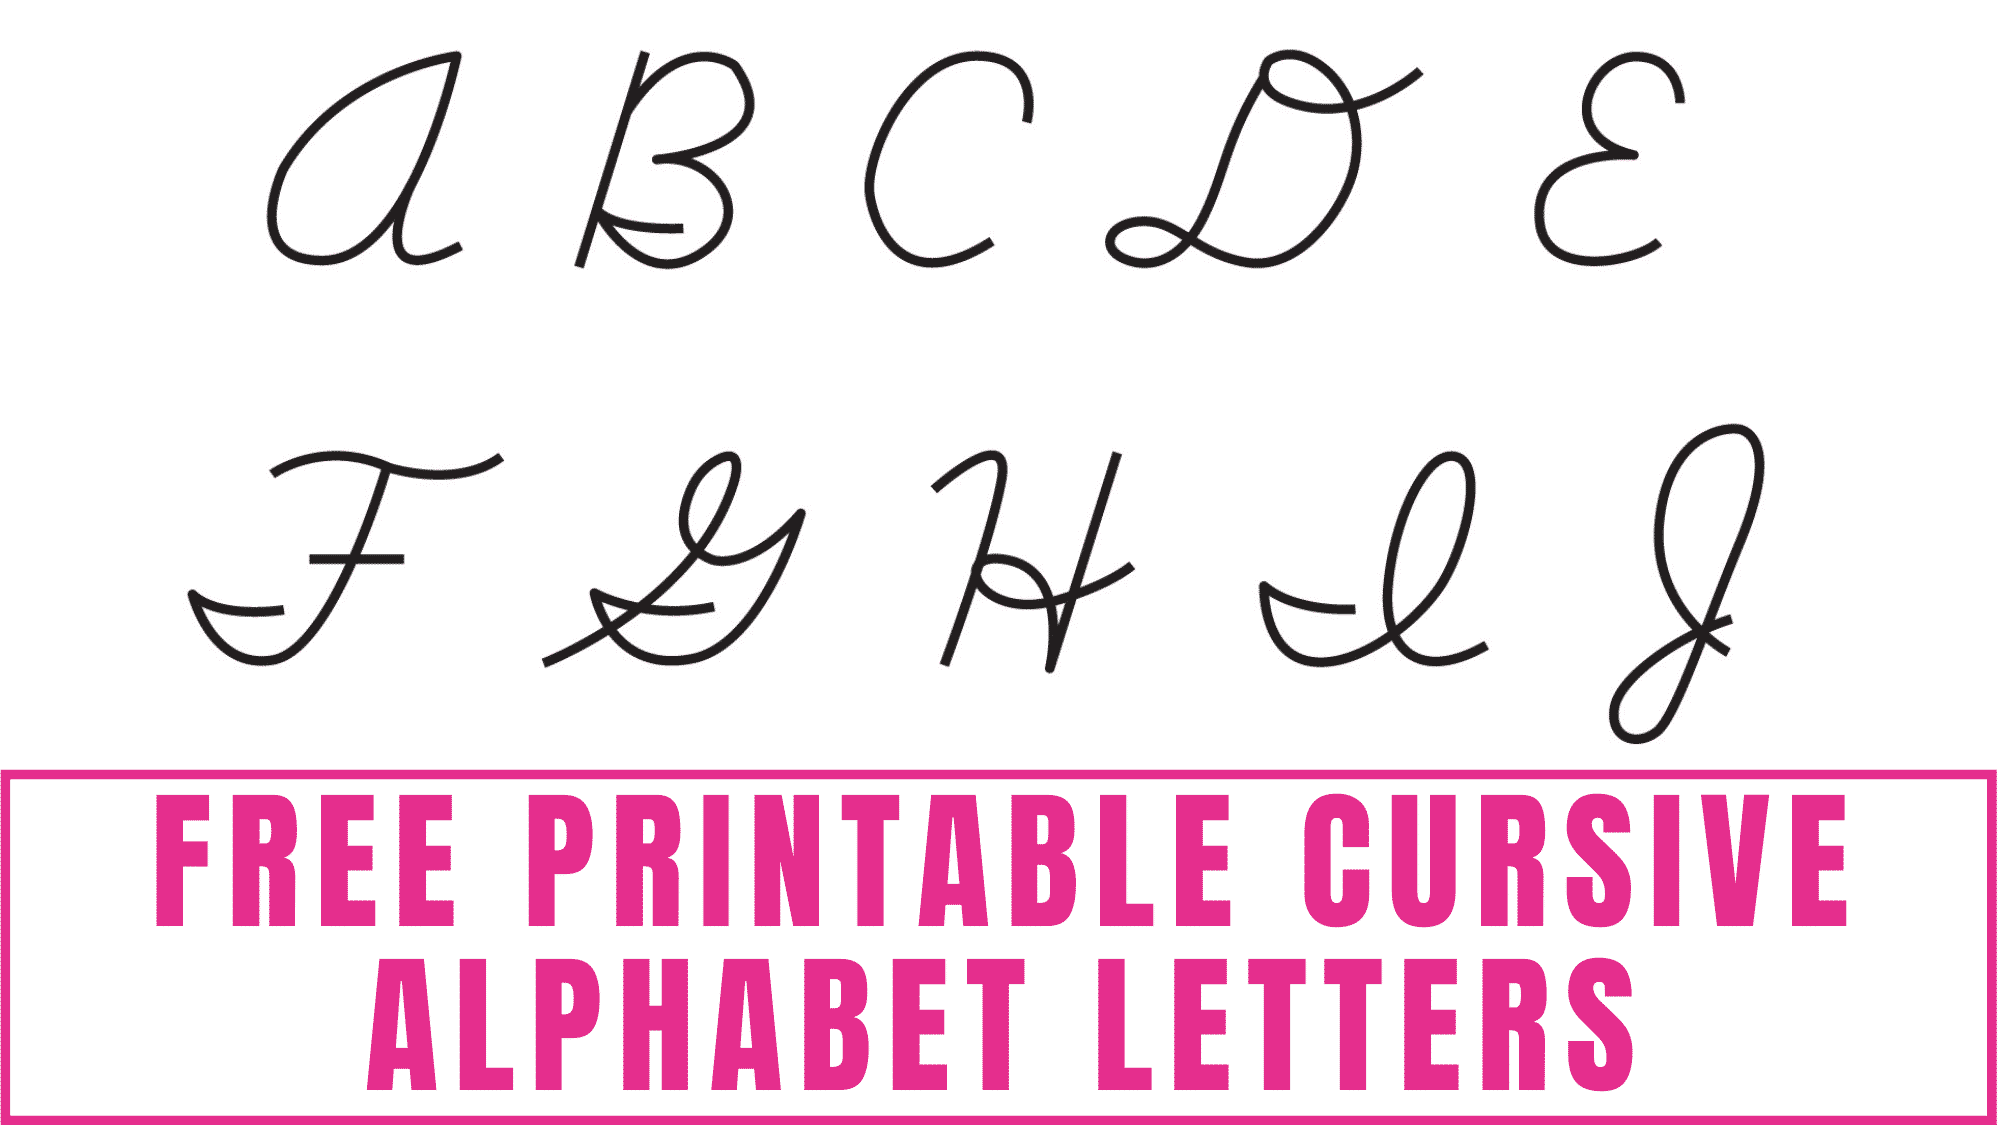 Learn how to write cursive letters by first tracing these free printable cursive alphabet letters.